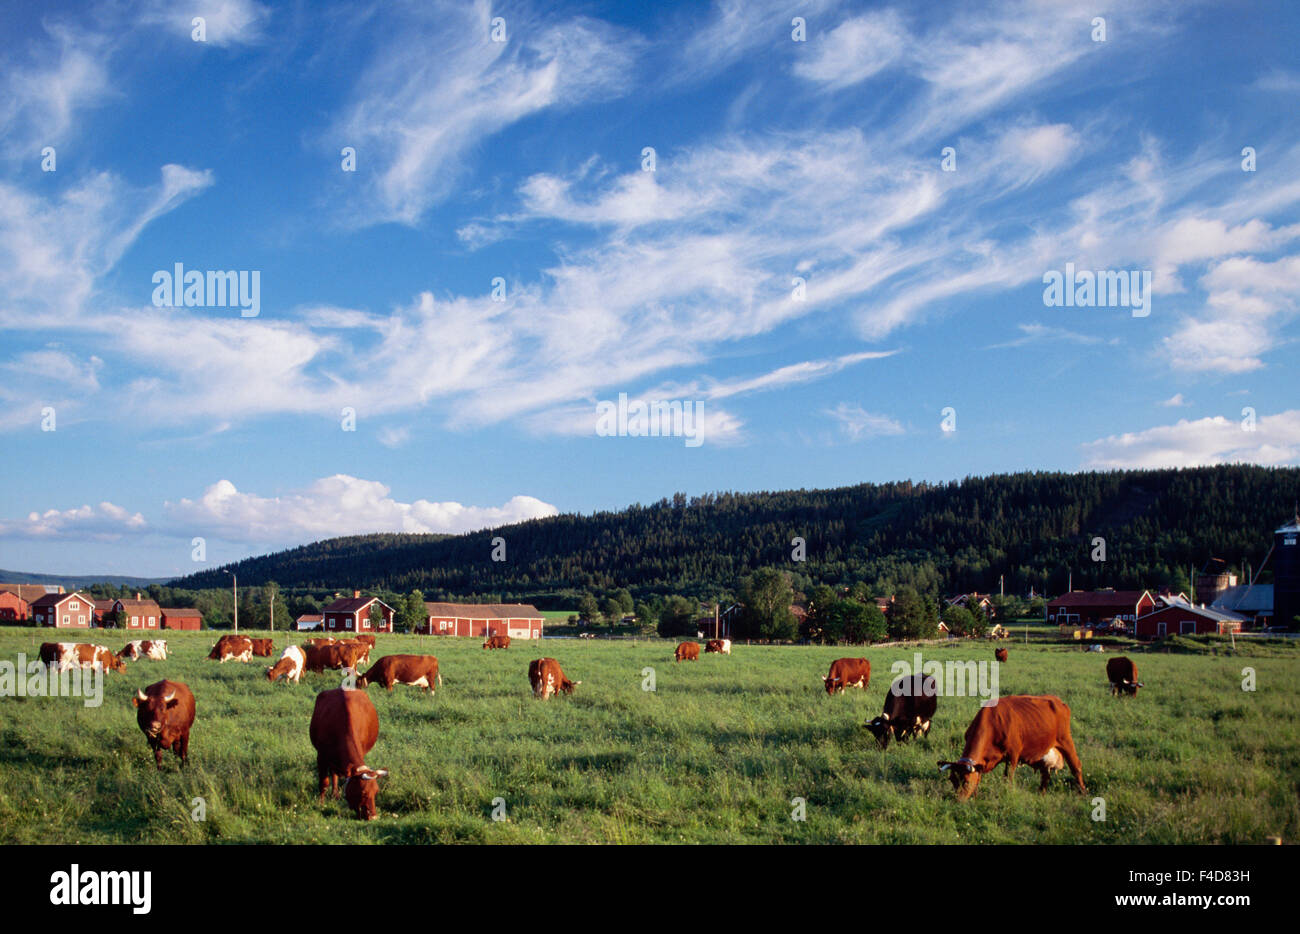 Cows grazing on grassland - Stock Image